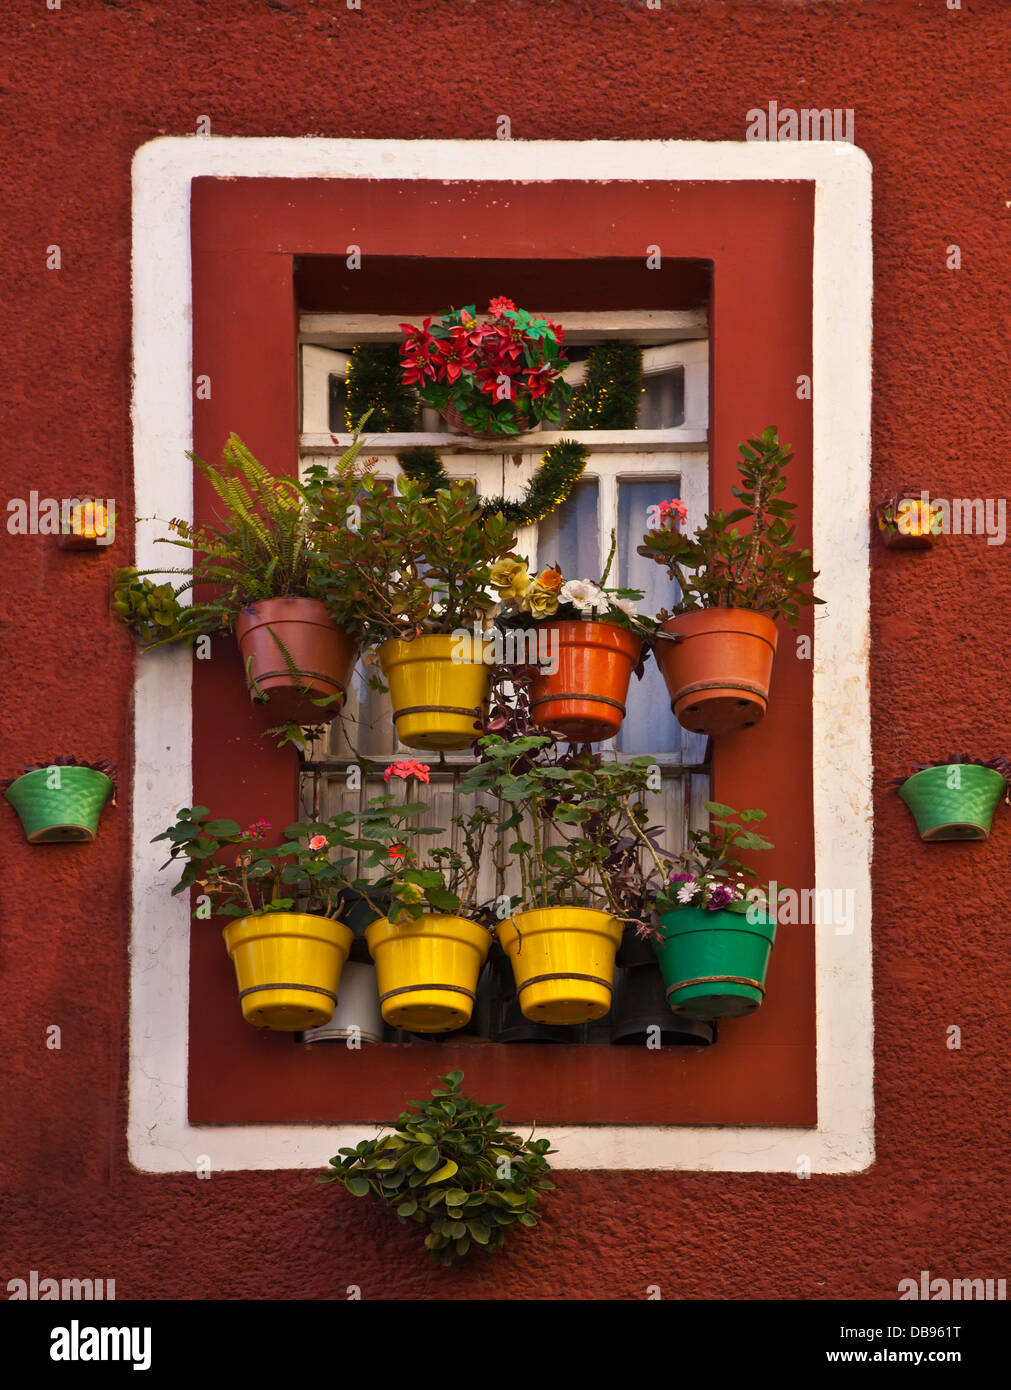 POTTED PLANTS hang from a window - GUANAJUATO, MEXICO - Stock Image